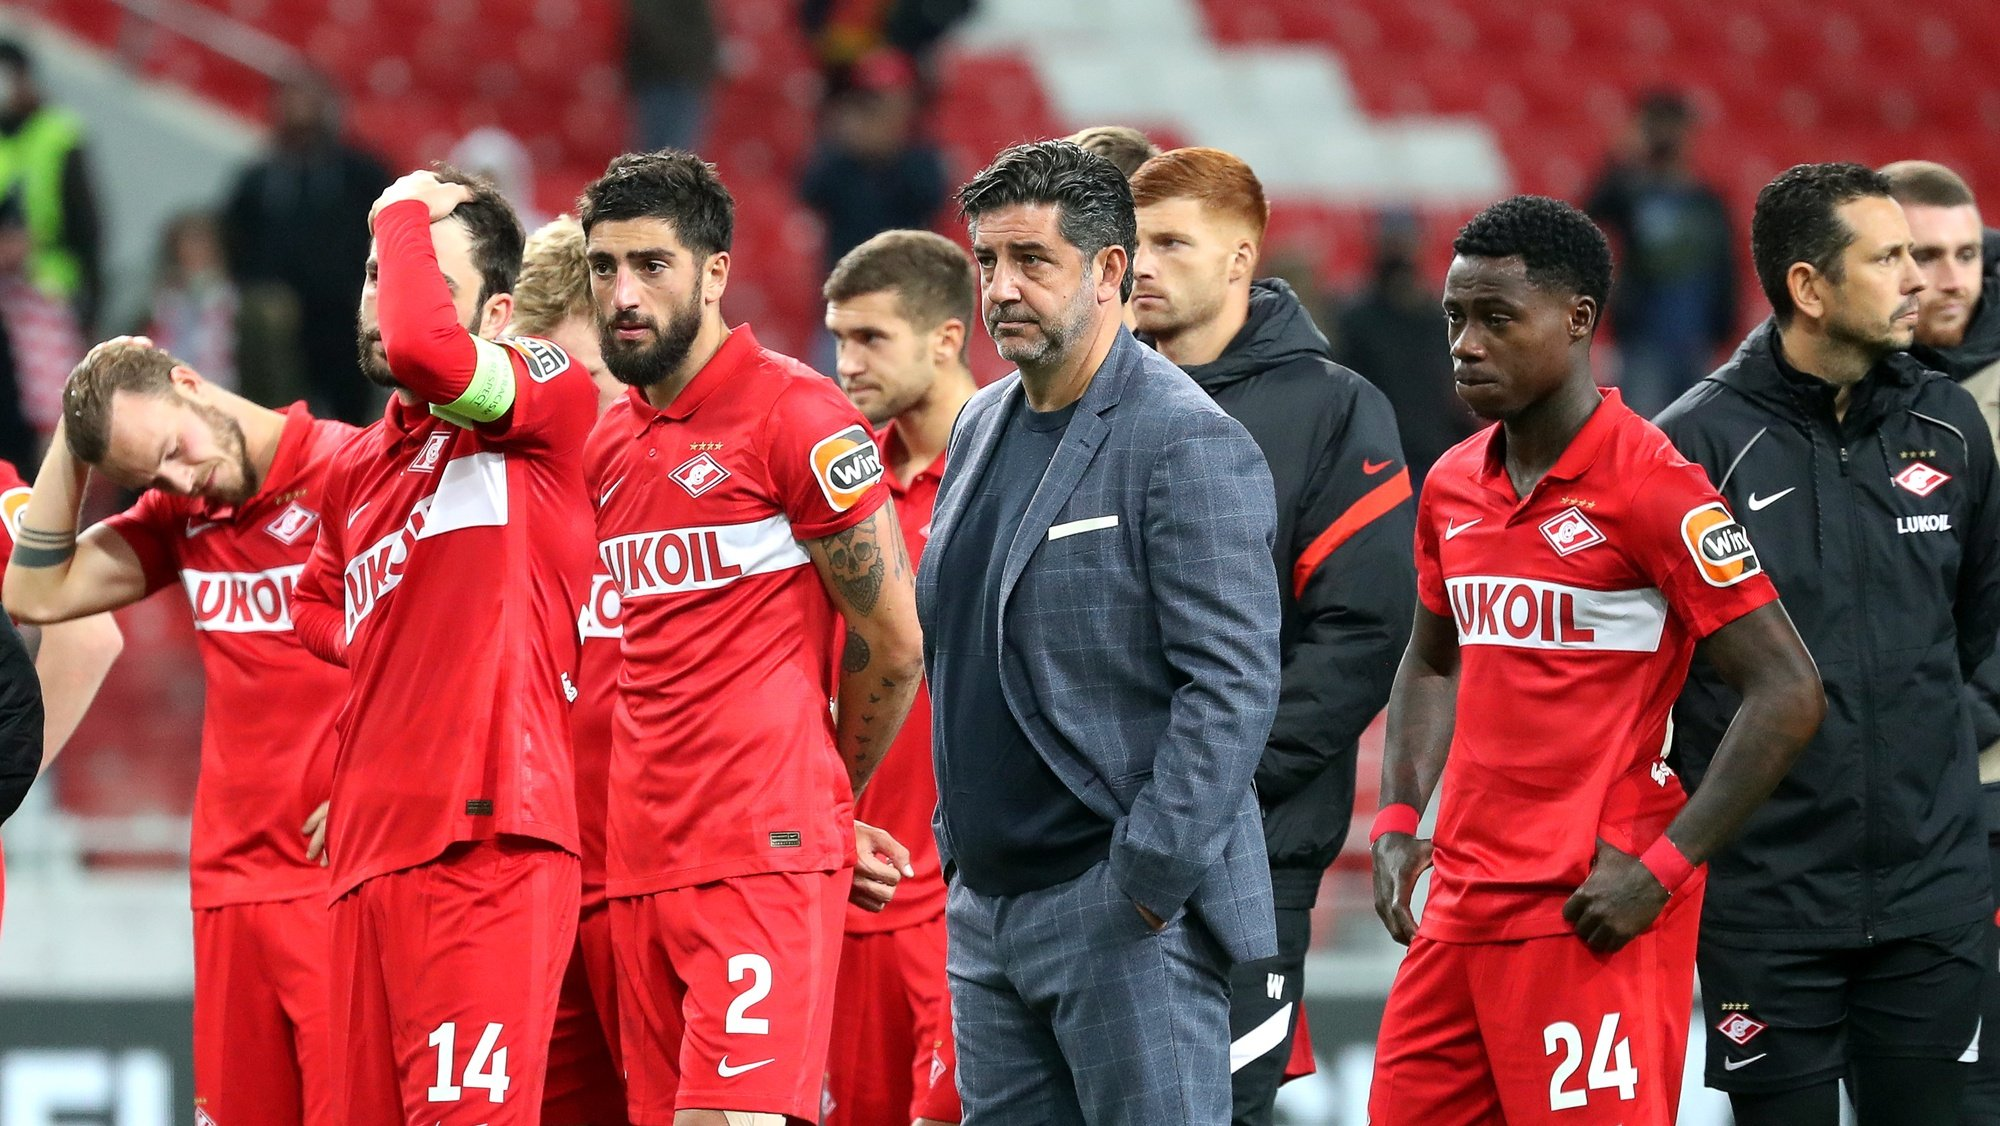 epa09469987 Spartak Moscow's head coach Rui Vitoria (C) and his players react after losing the UEFA Europa League group C soccer match between Legia Warsaw and FC Spartak Moscow at the Spartak Stadium in Moscow, Russia, 15 September 2021.  EPA/MAXIM SHIPENKOV